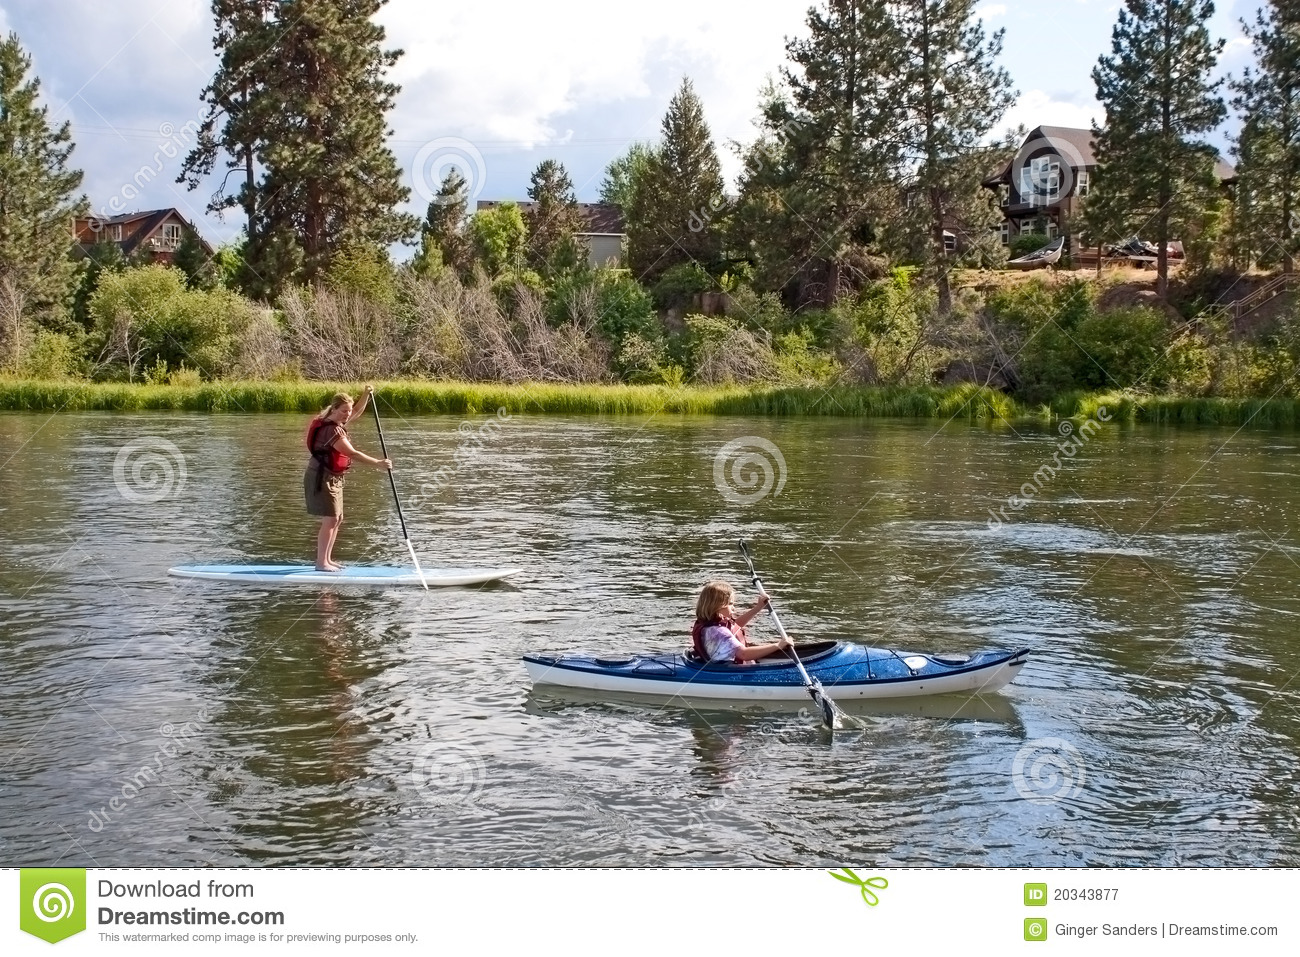 People Paddle Boarding And Canoeing In River